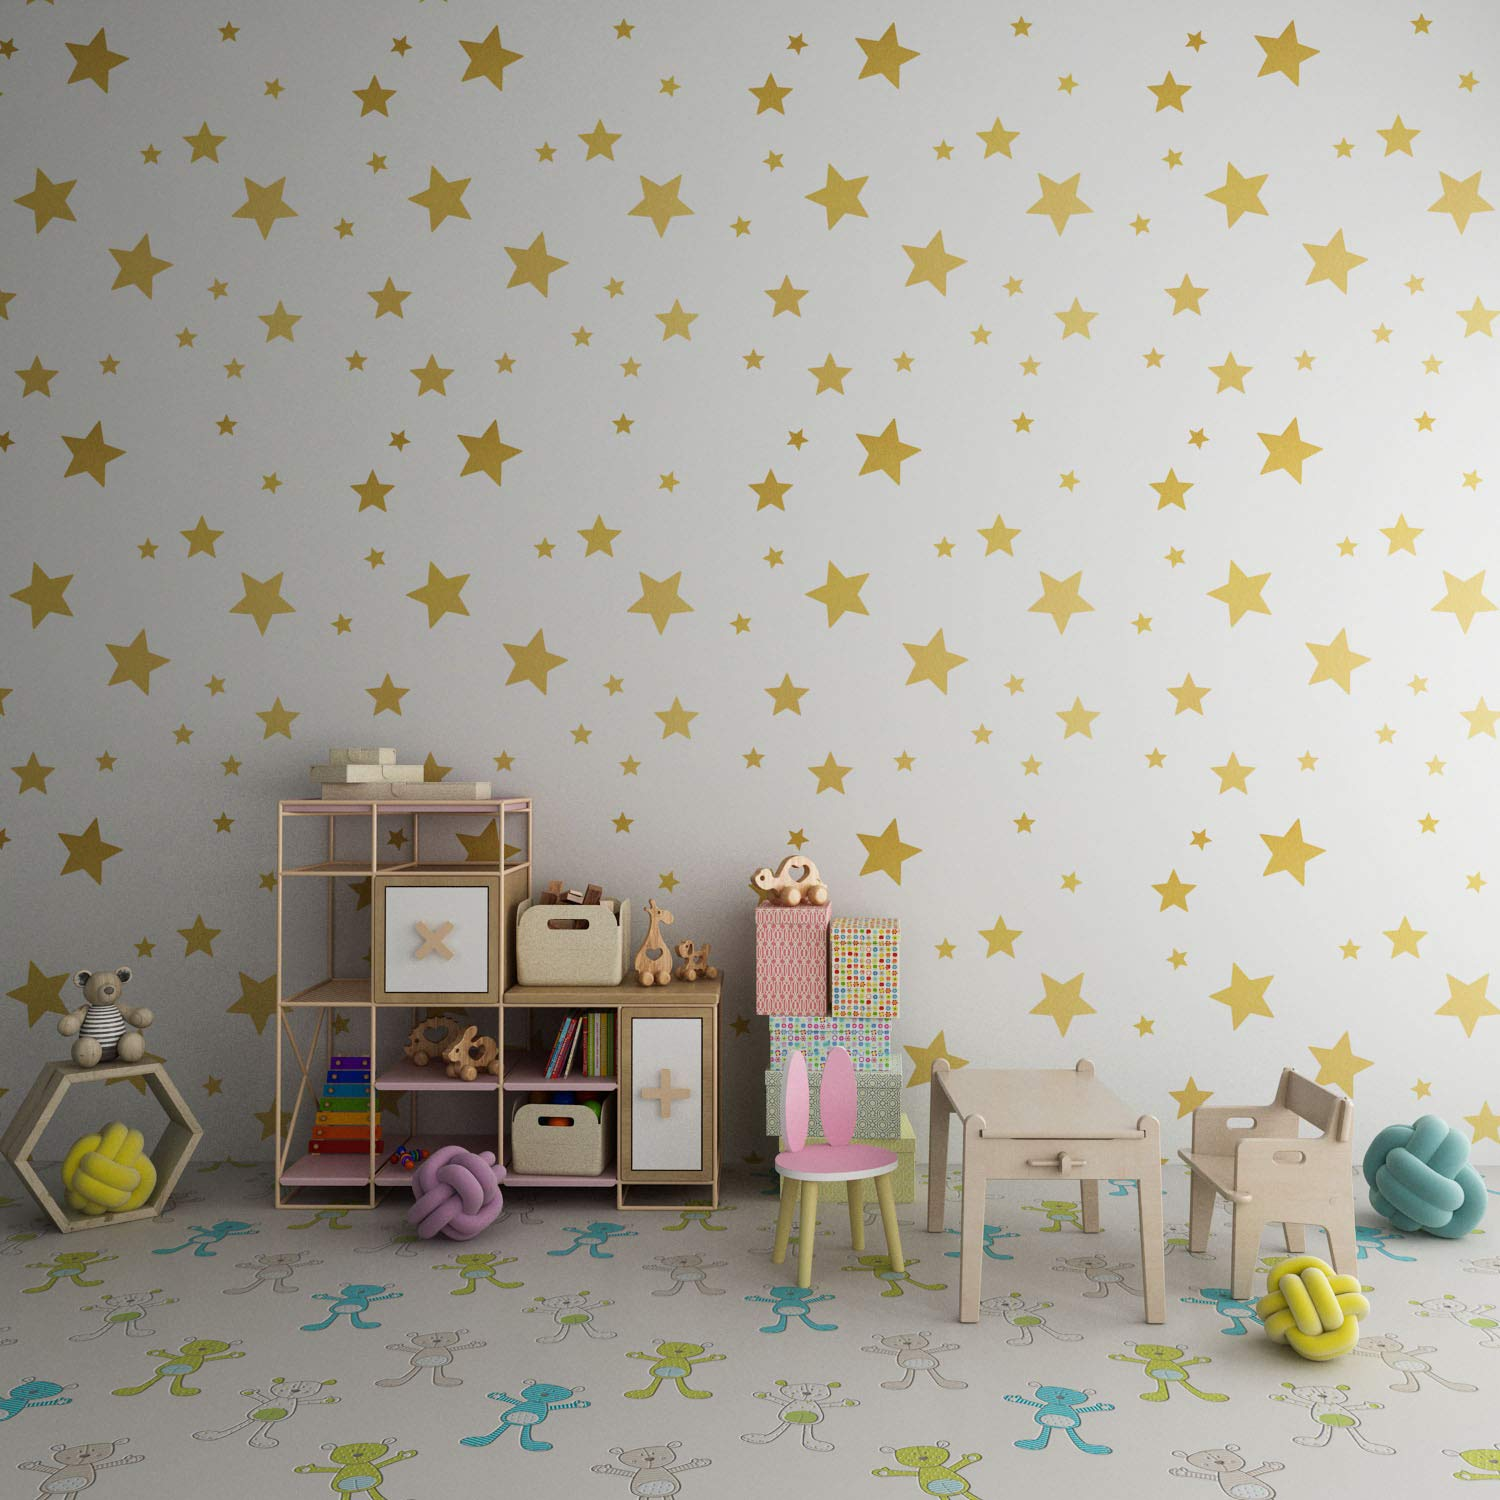 FOAL Gold Stars Wall Decals Wall Stickers Removable Home Decoration Easy to Peel Stick Painted Walls Metallic Vinyl Polka Wall Decor Sticker for Baby Kids Nursery Bedroom 216 Decals